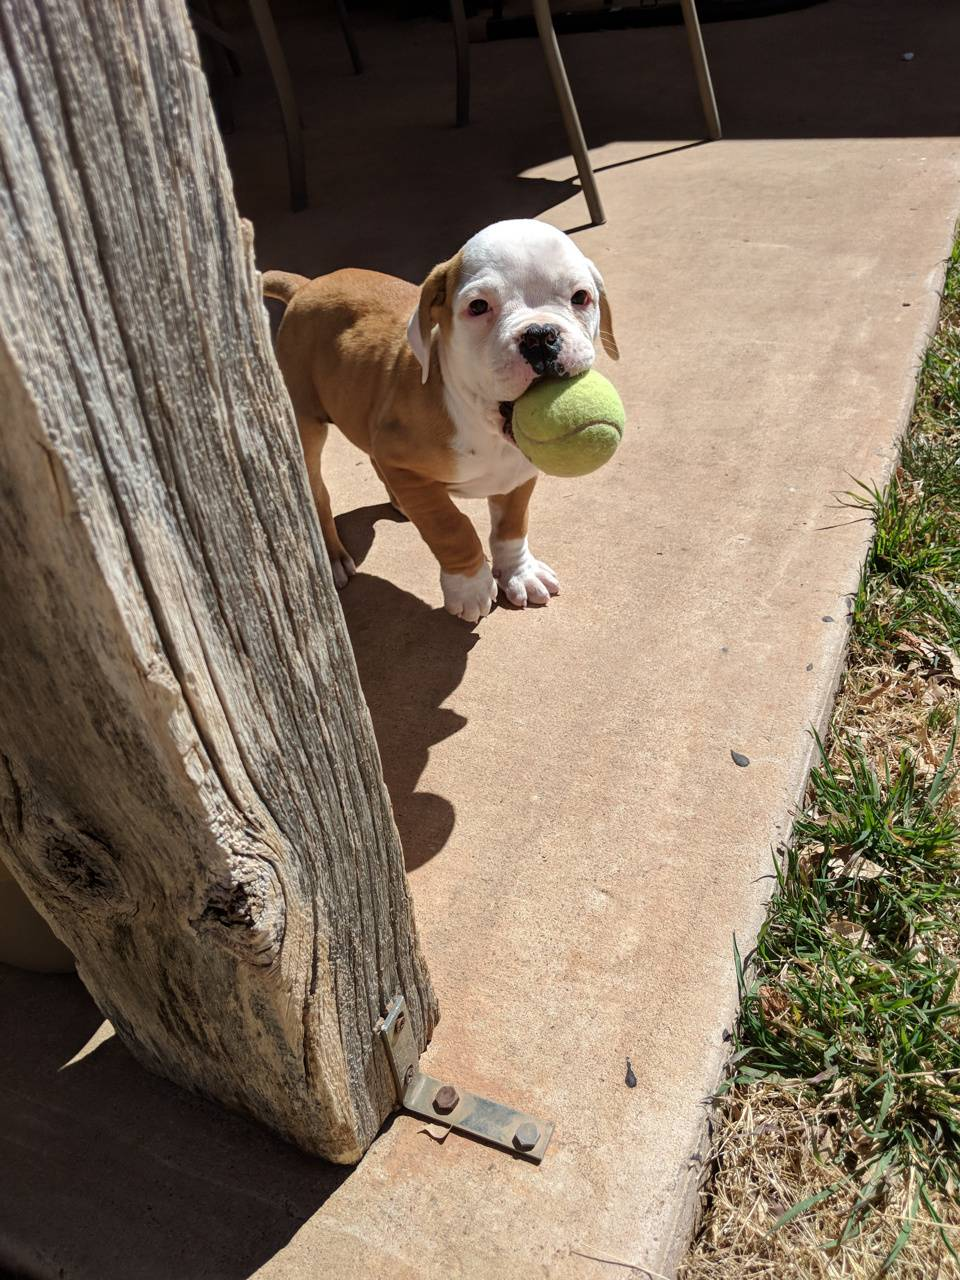 Puppy and her ball